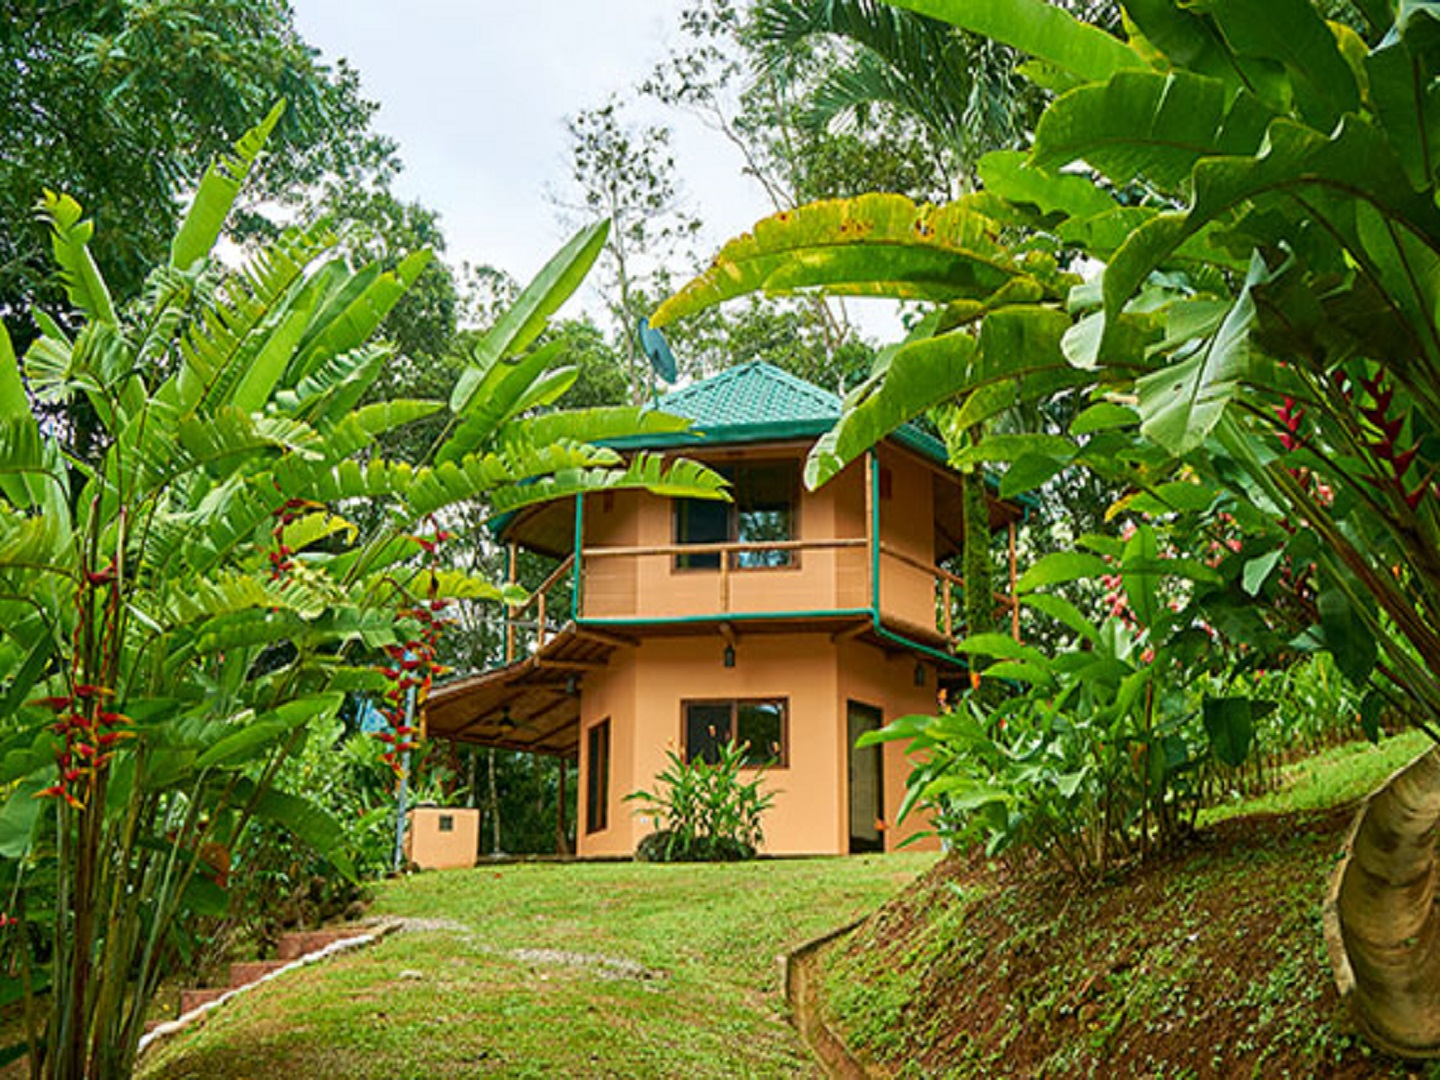 A group of palm trees at Manoas Luxury Camping & Villa Rentals.